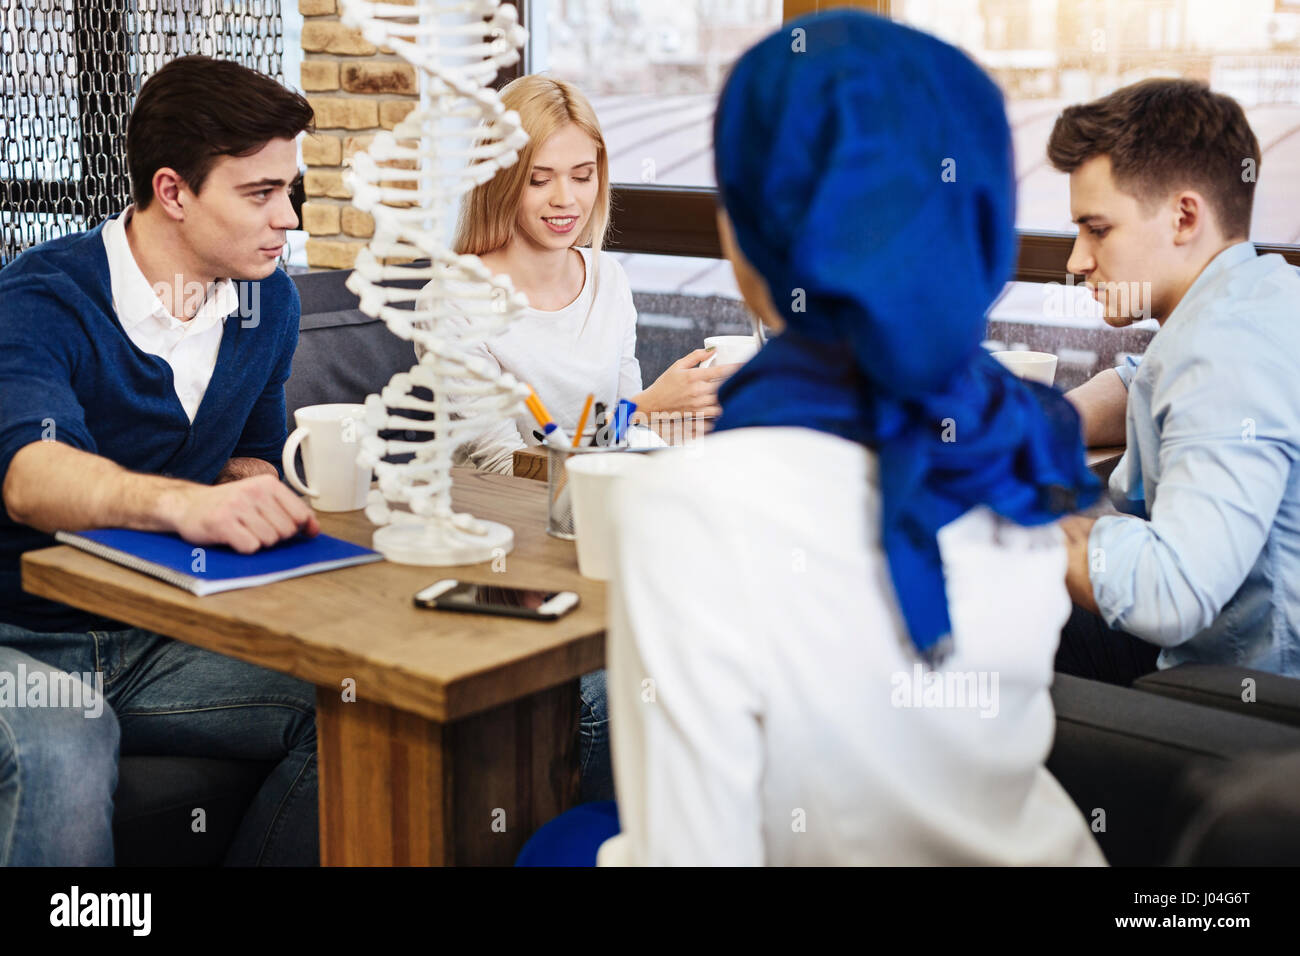 Group of students preparing project work in genetics - Stock Image